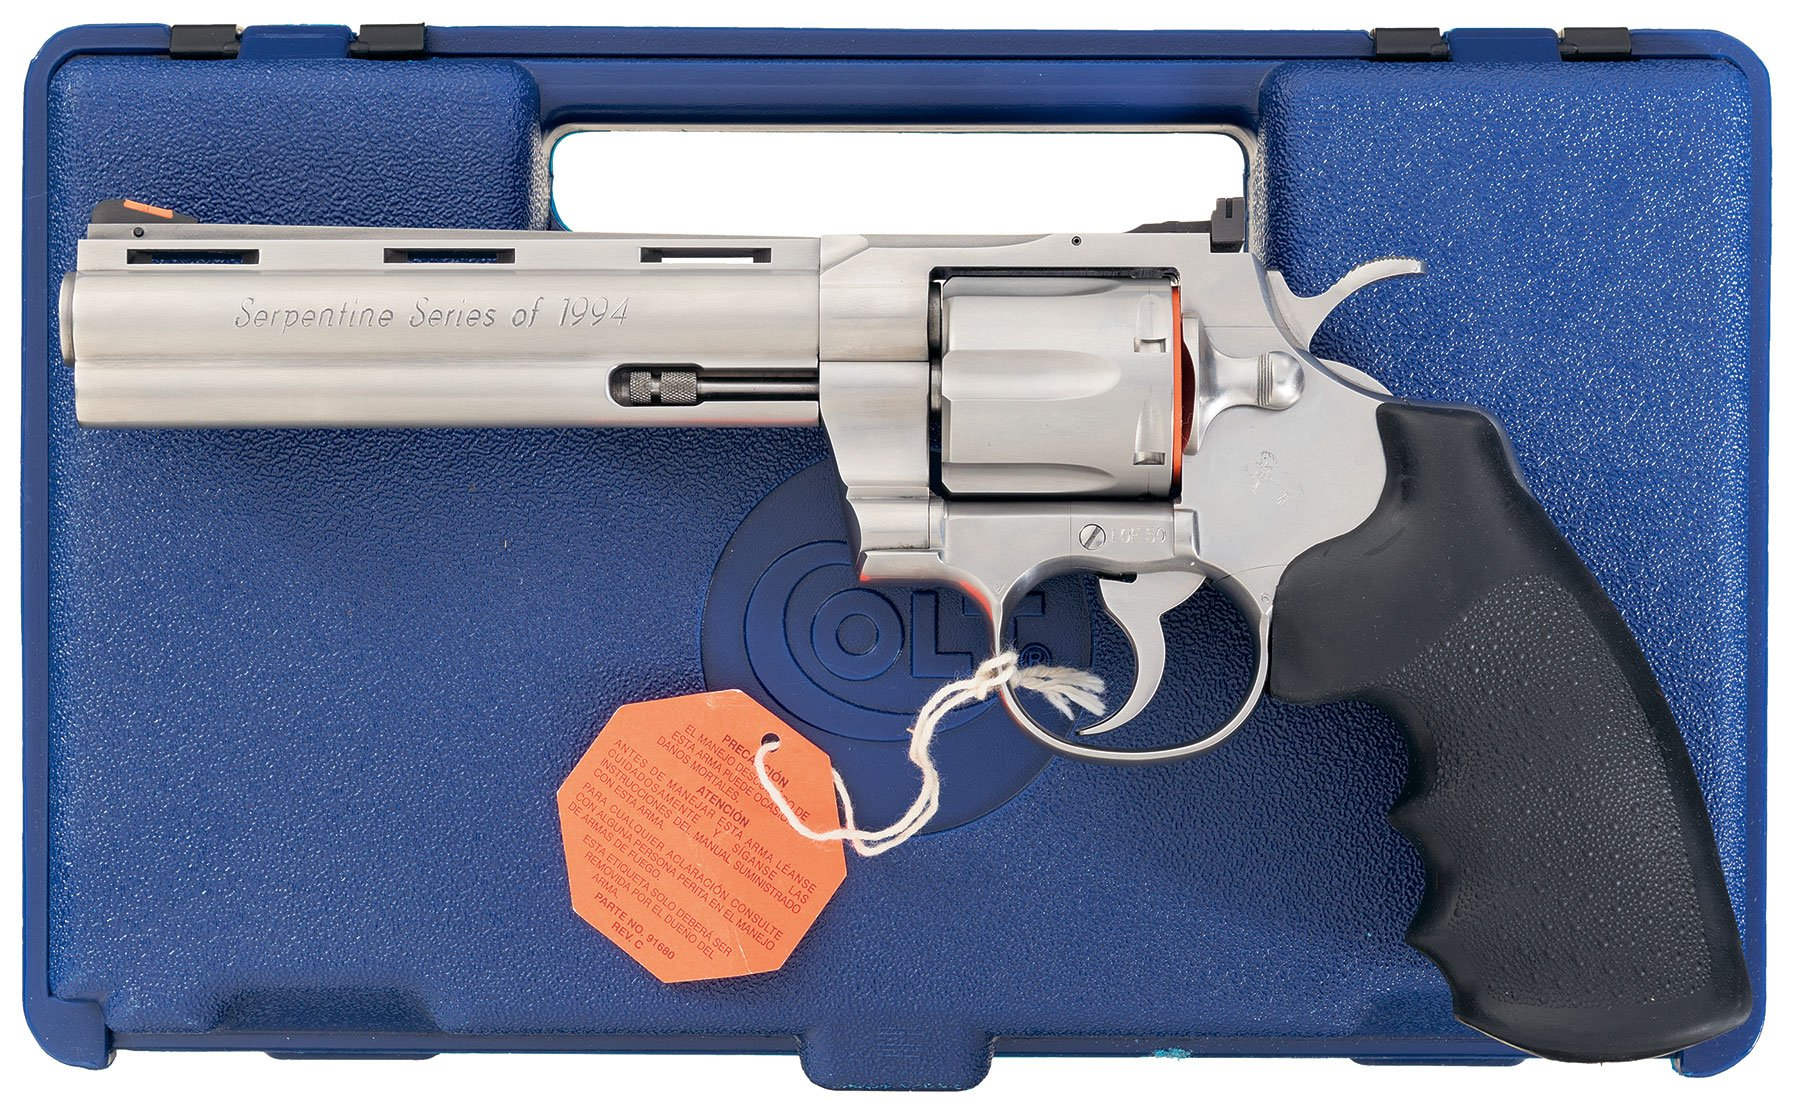 Colt Serpentine Series of 1994 Python with Factory Letter